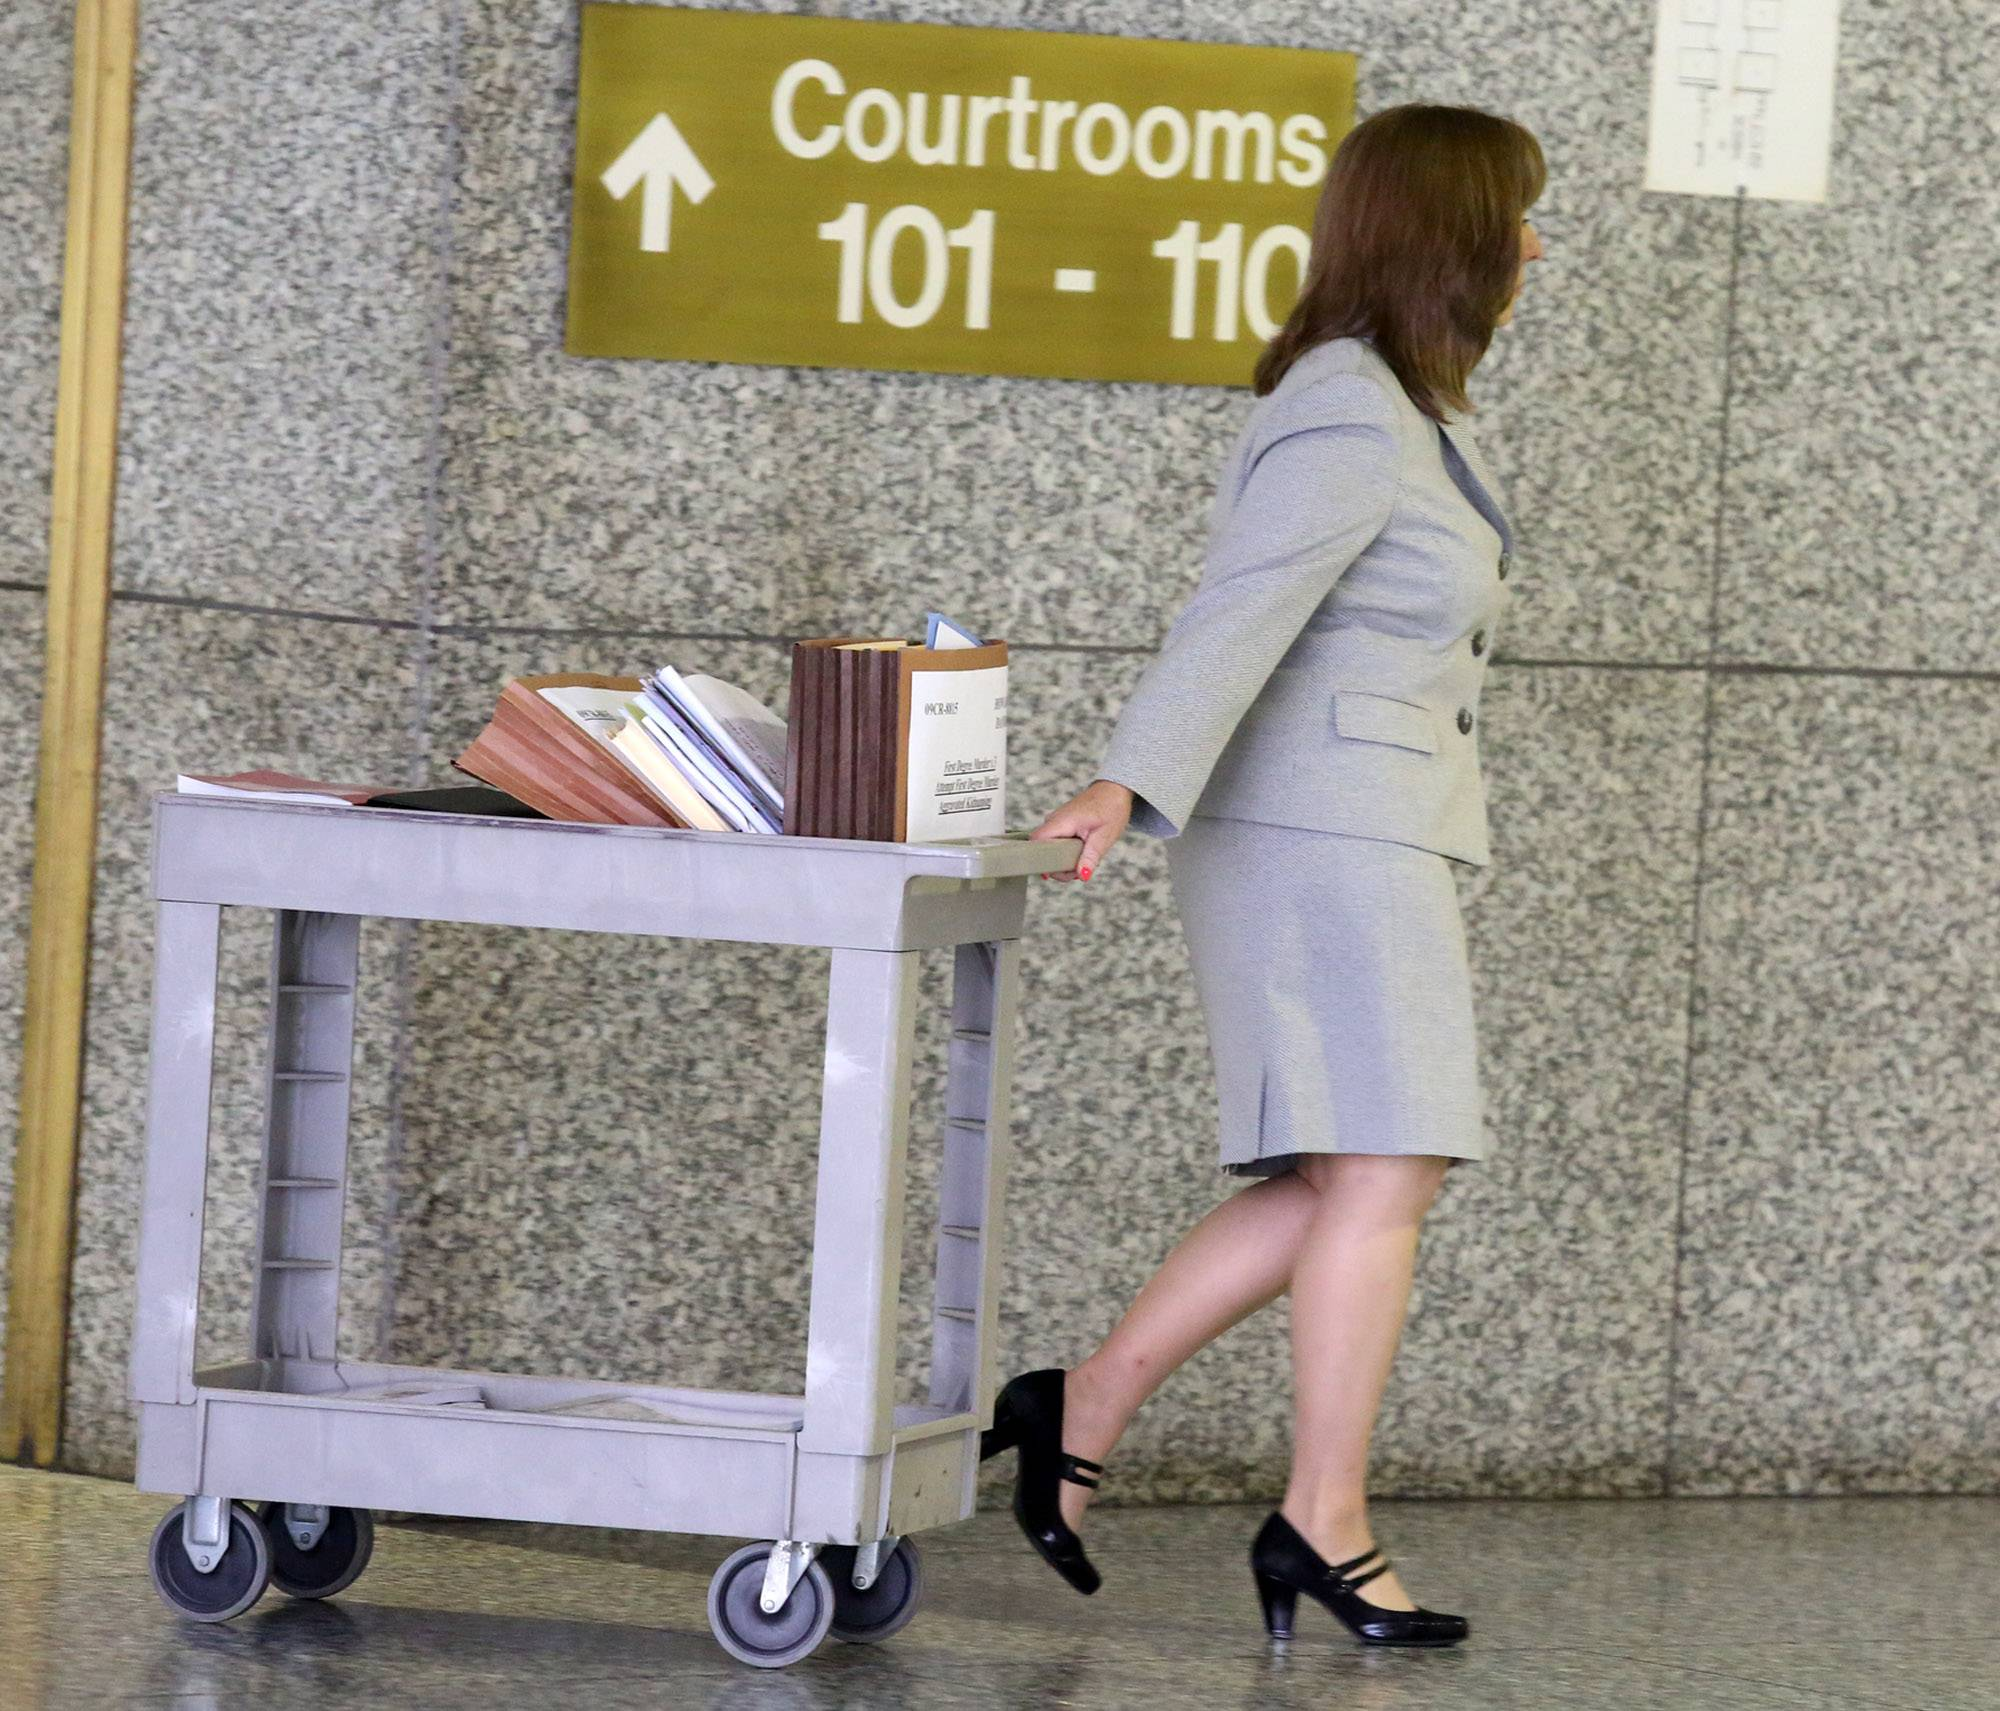 Cook County Assistant State's Attorney Maria McCarthy, lead prosecutor in the D'Andre Howard trial, pulls a case files cart to Wednesday's sentencing hearing at the Cook County courthouse in Rolling Meadows.